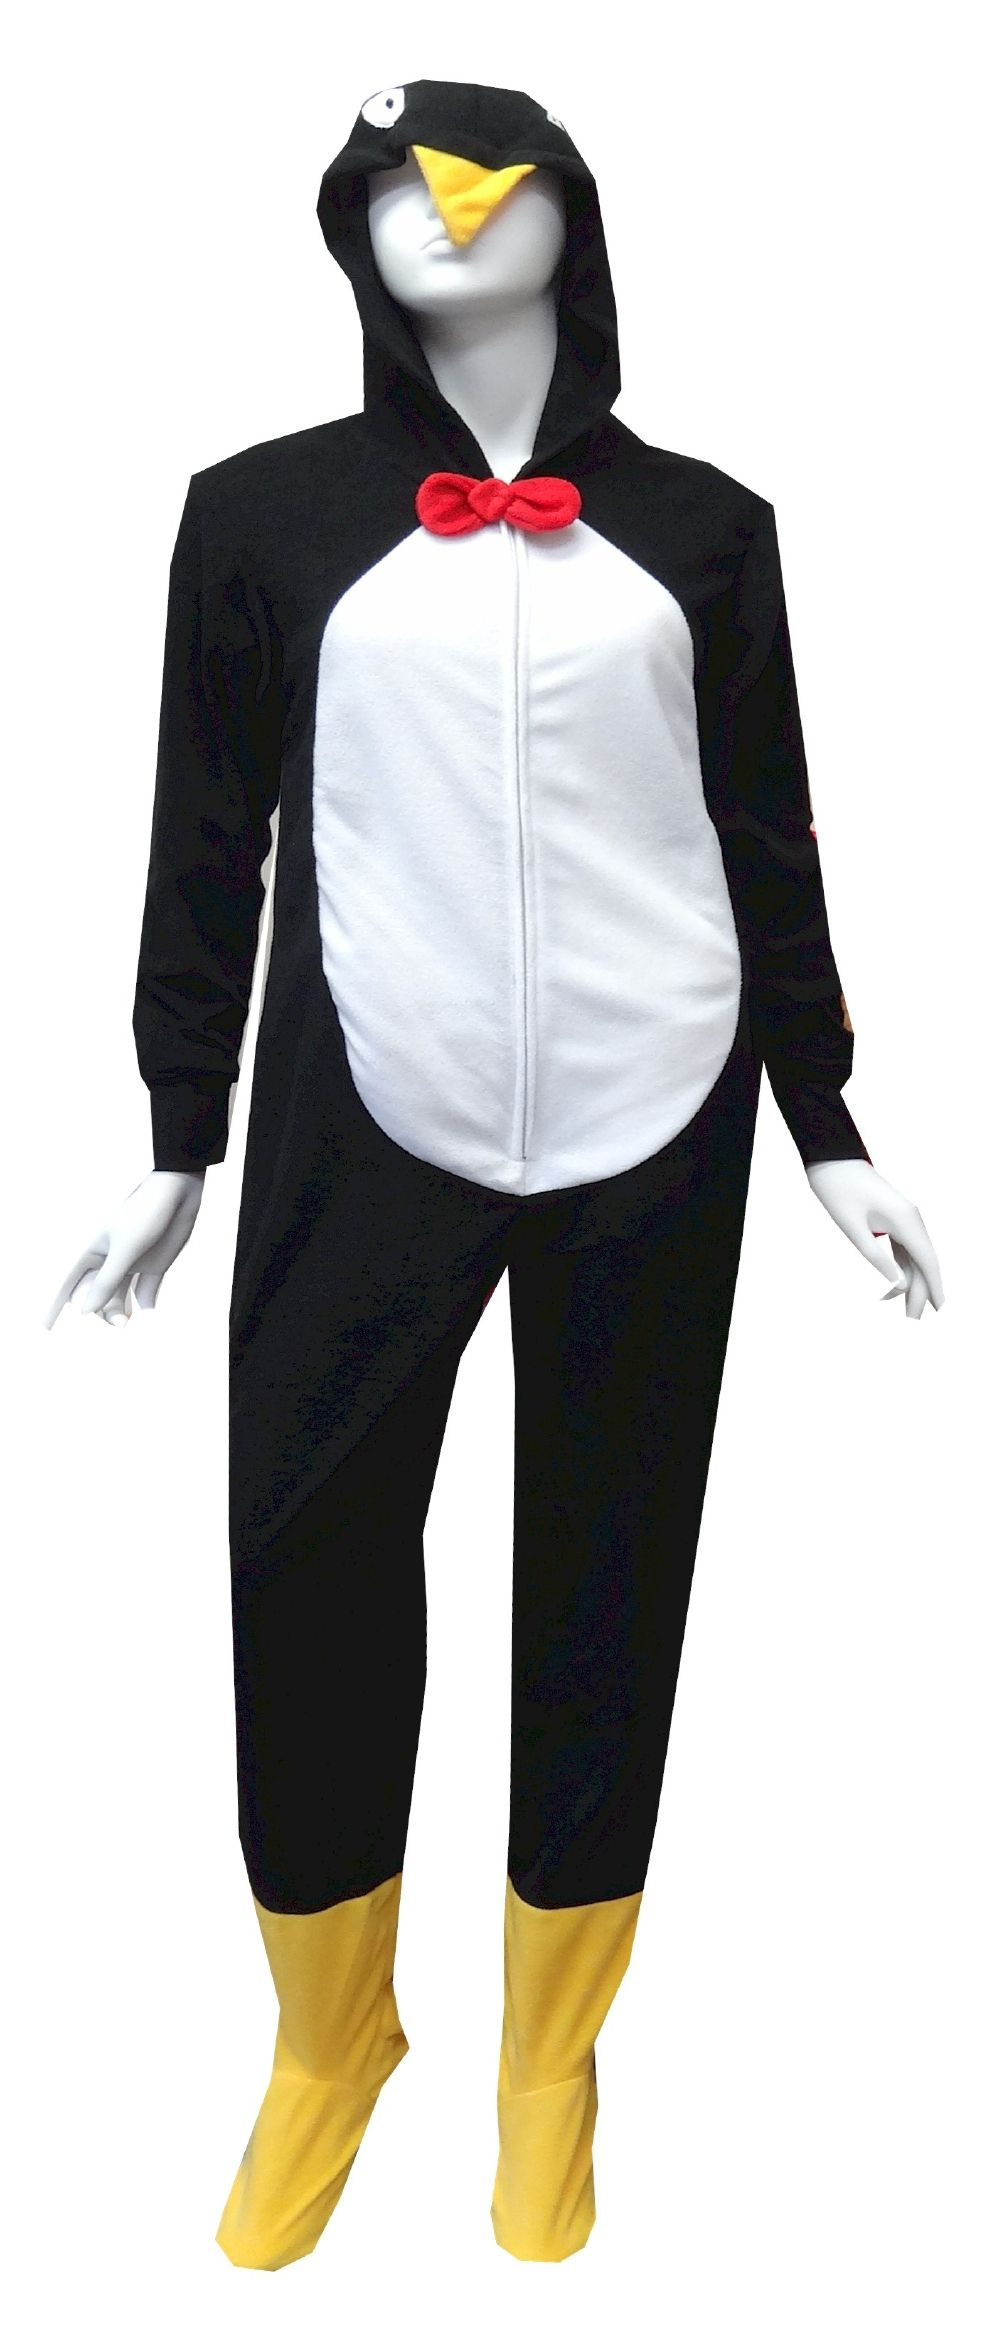 c8f261715120 Penguin Hooded Onesie Footie Pajama Time for some fun!! These black ...